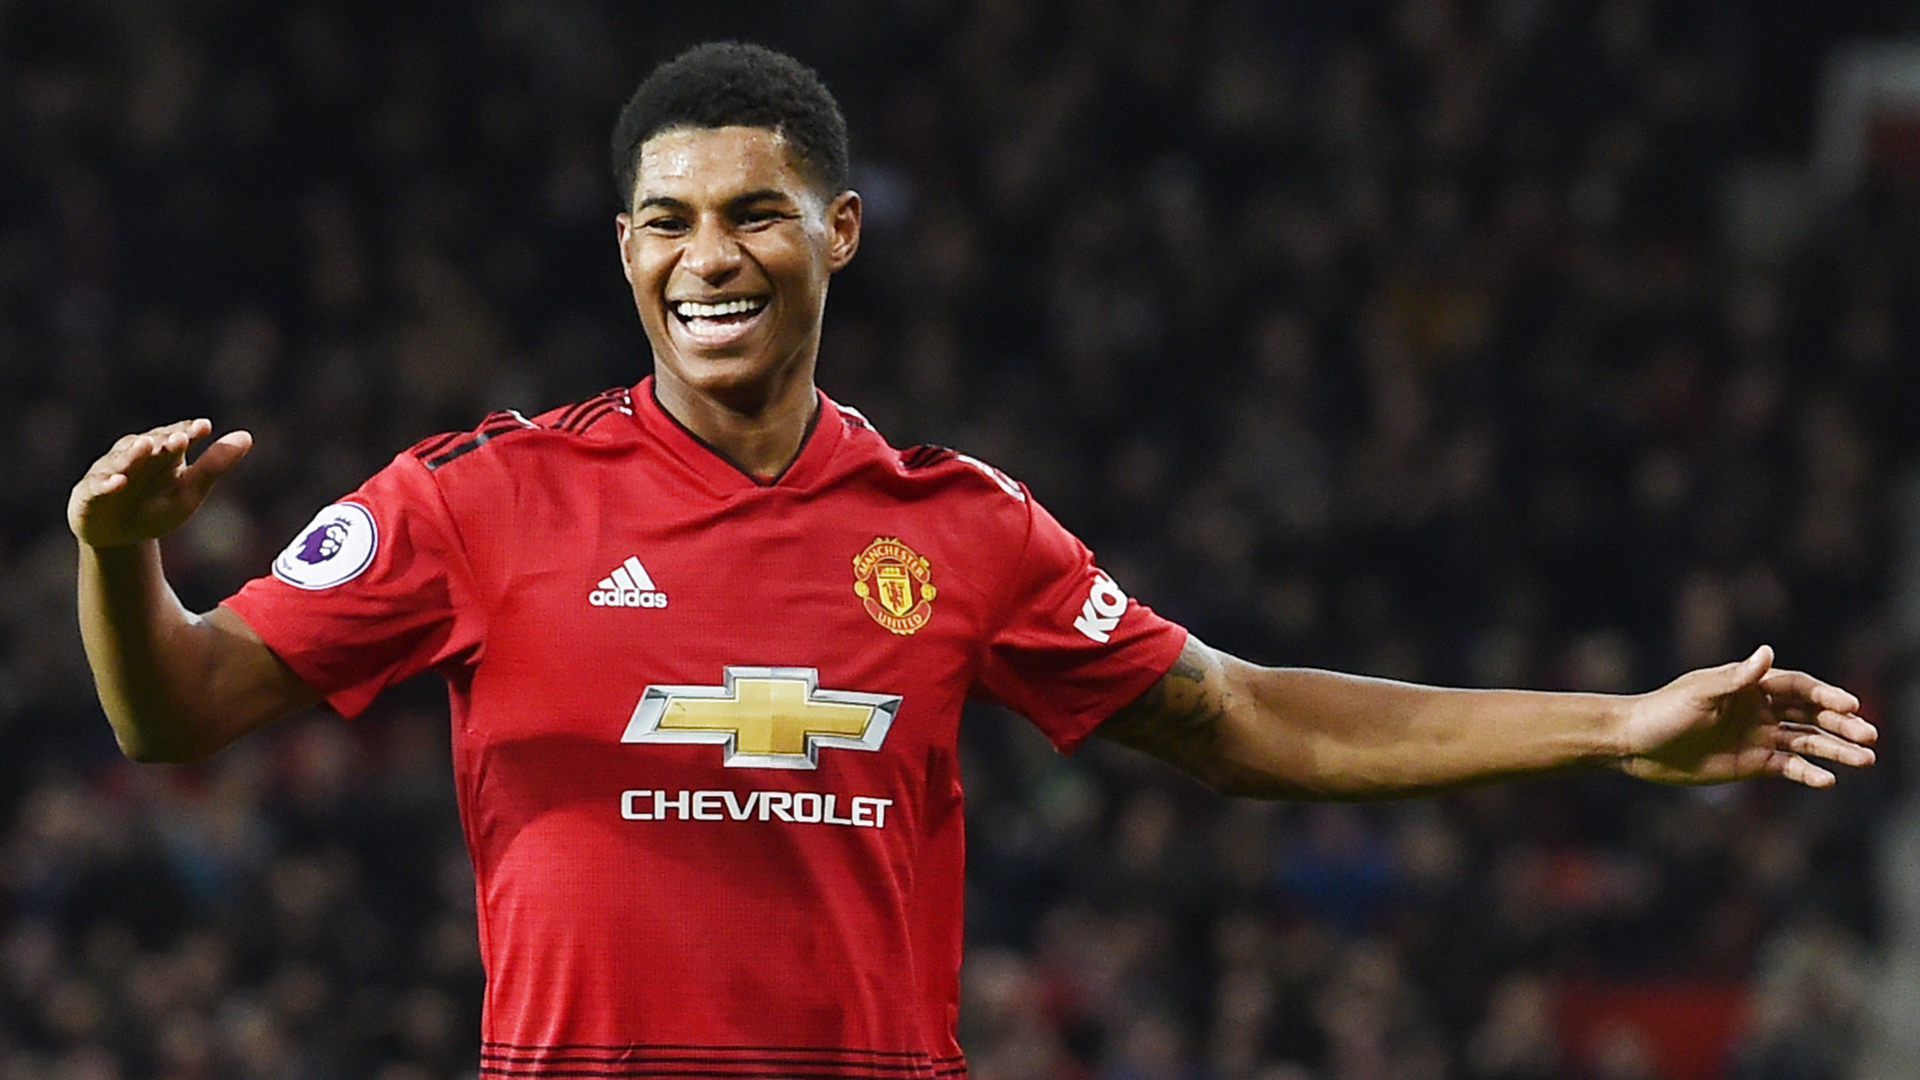 'Who is this kid?' - Smalling reveals moment Man Utd stars took notice of Rashford in 2016 training match